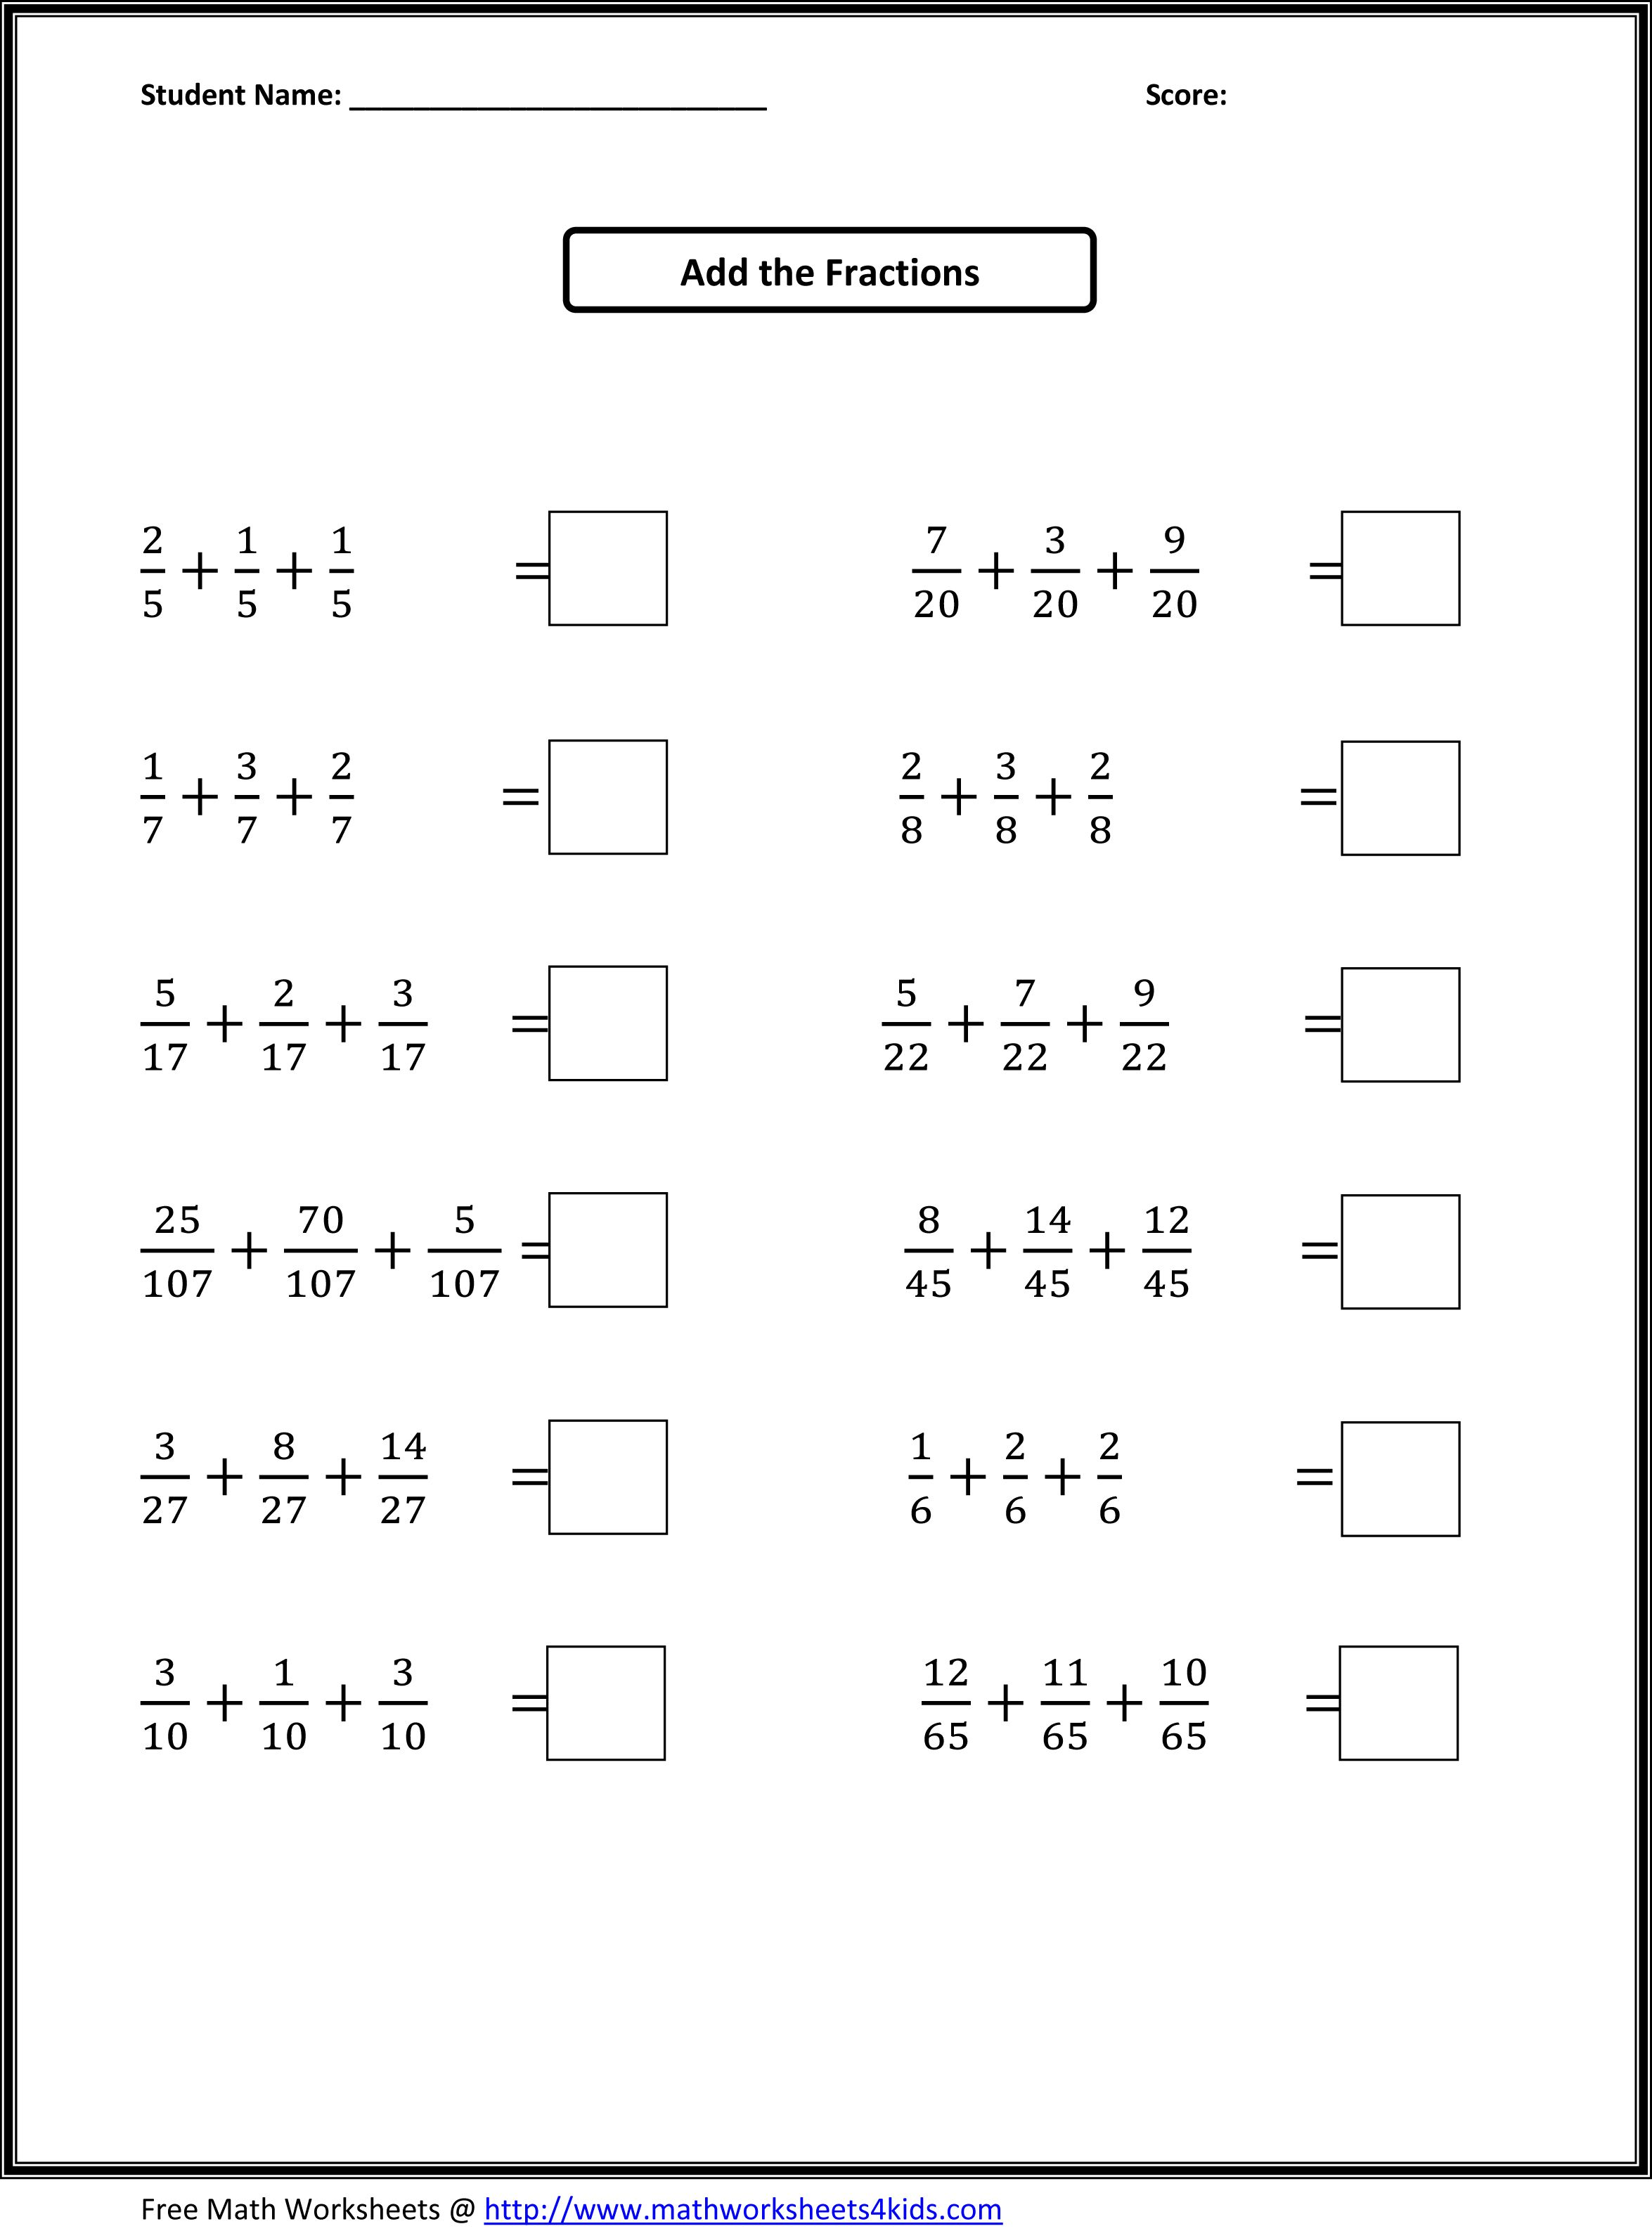 Worksheets Math For 4th Graders Printable Worksheets worksheets for all early ed grades topics of math high quality equivalent fractions grade photos